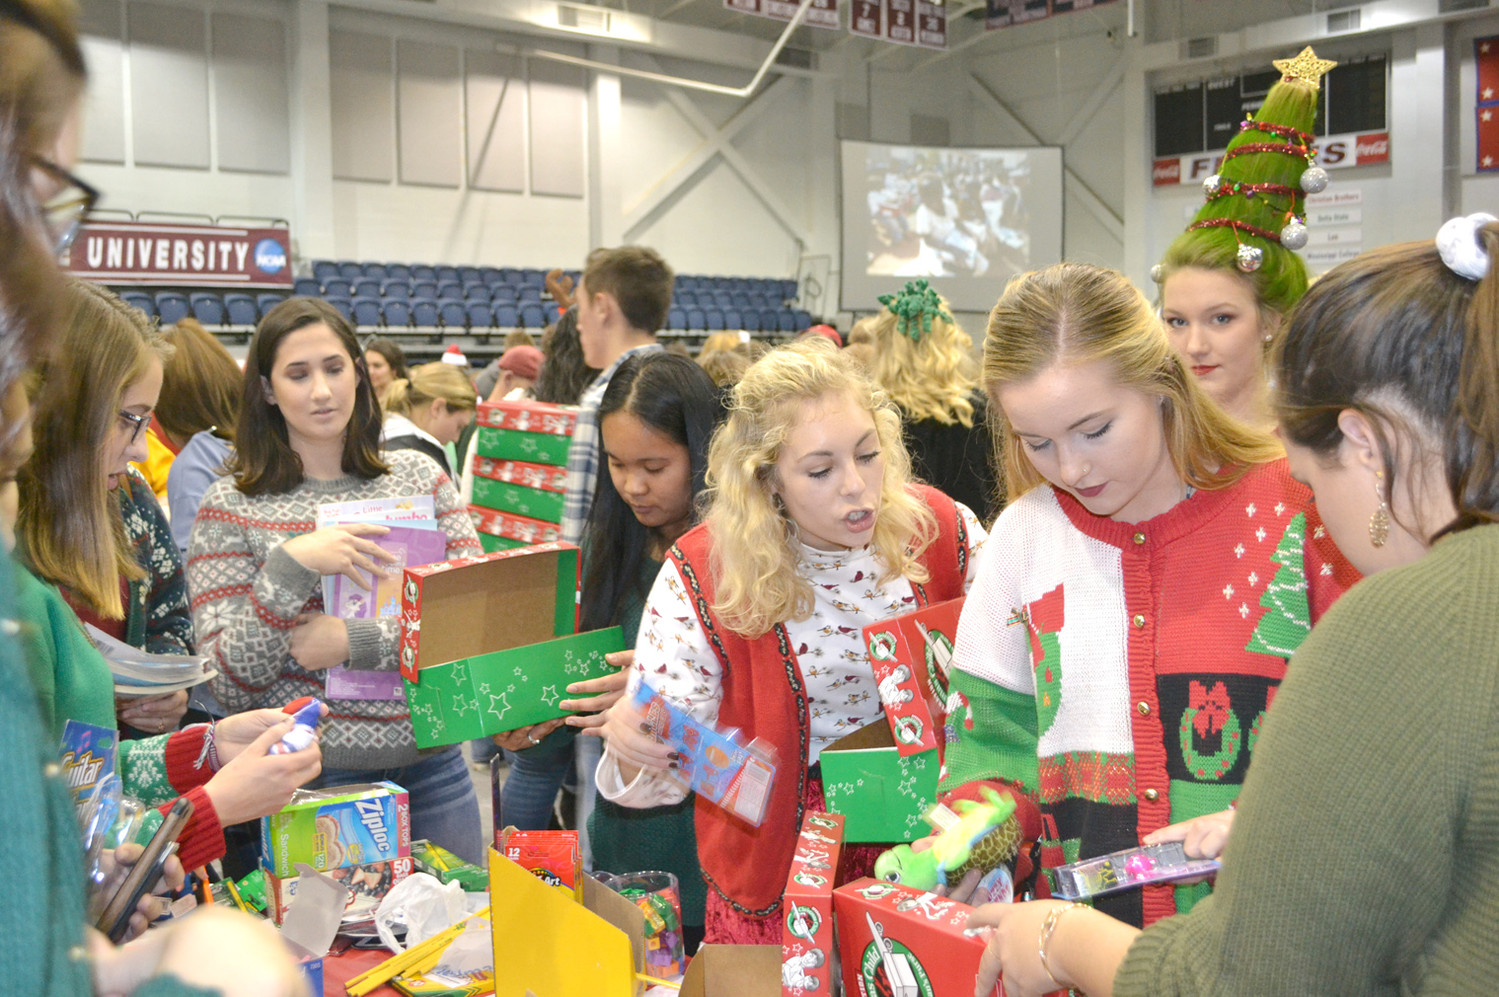 LEE UNIVERSITY students work together to create and pack boxes for Operation Christmas Child. The goal for this year is 35,000 boxes.